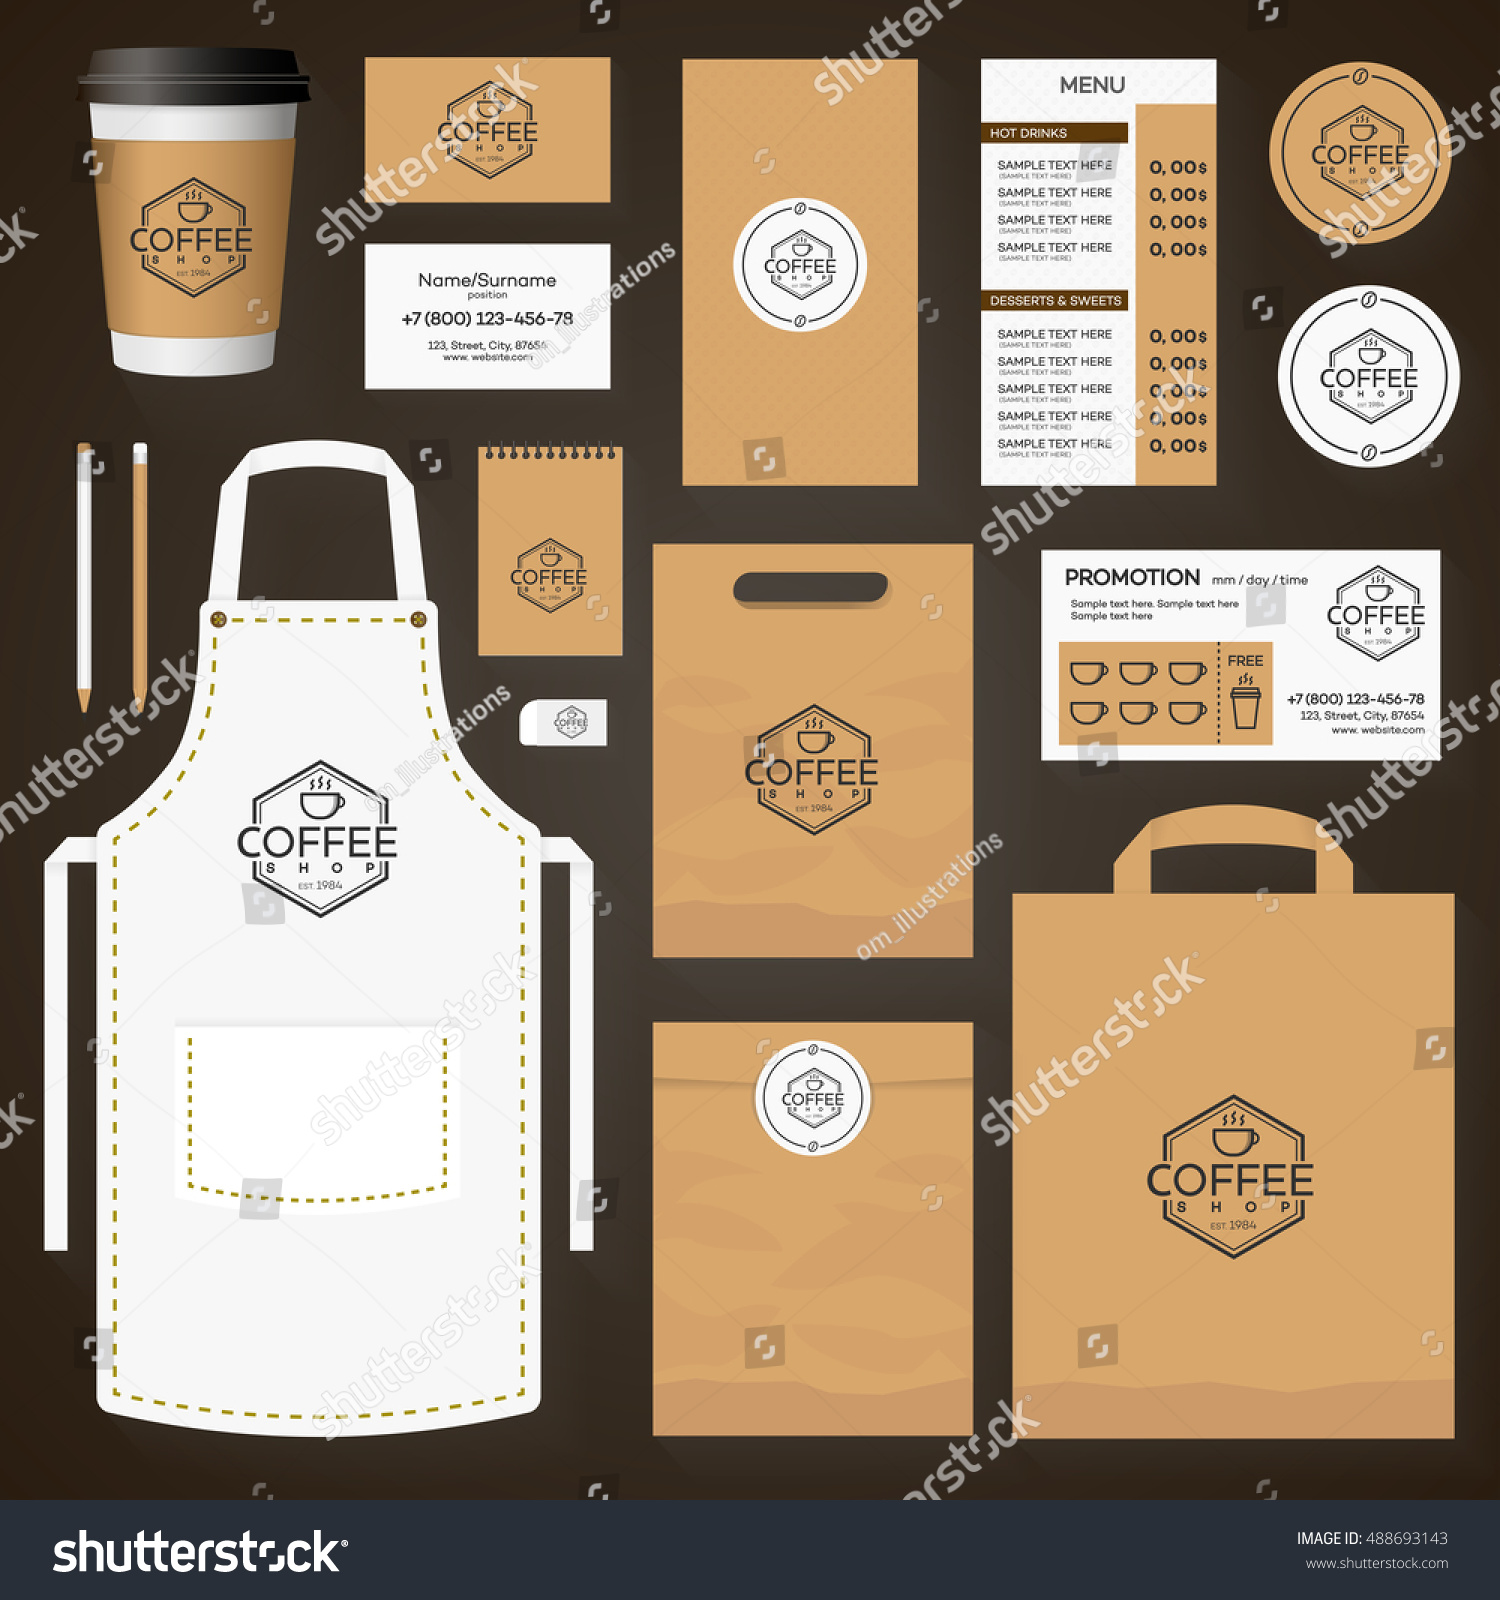 coffee house corporate identity template design stock vector